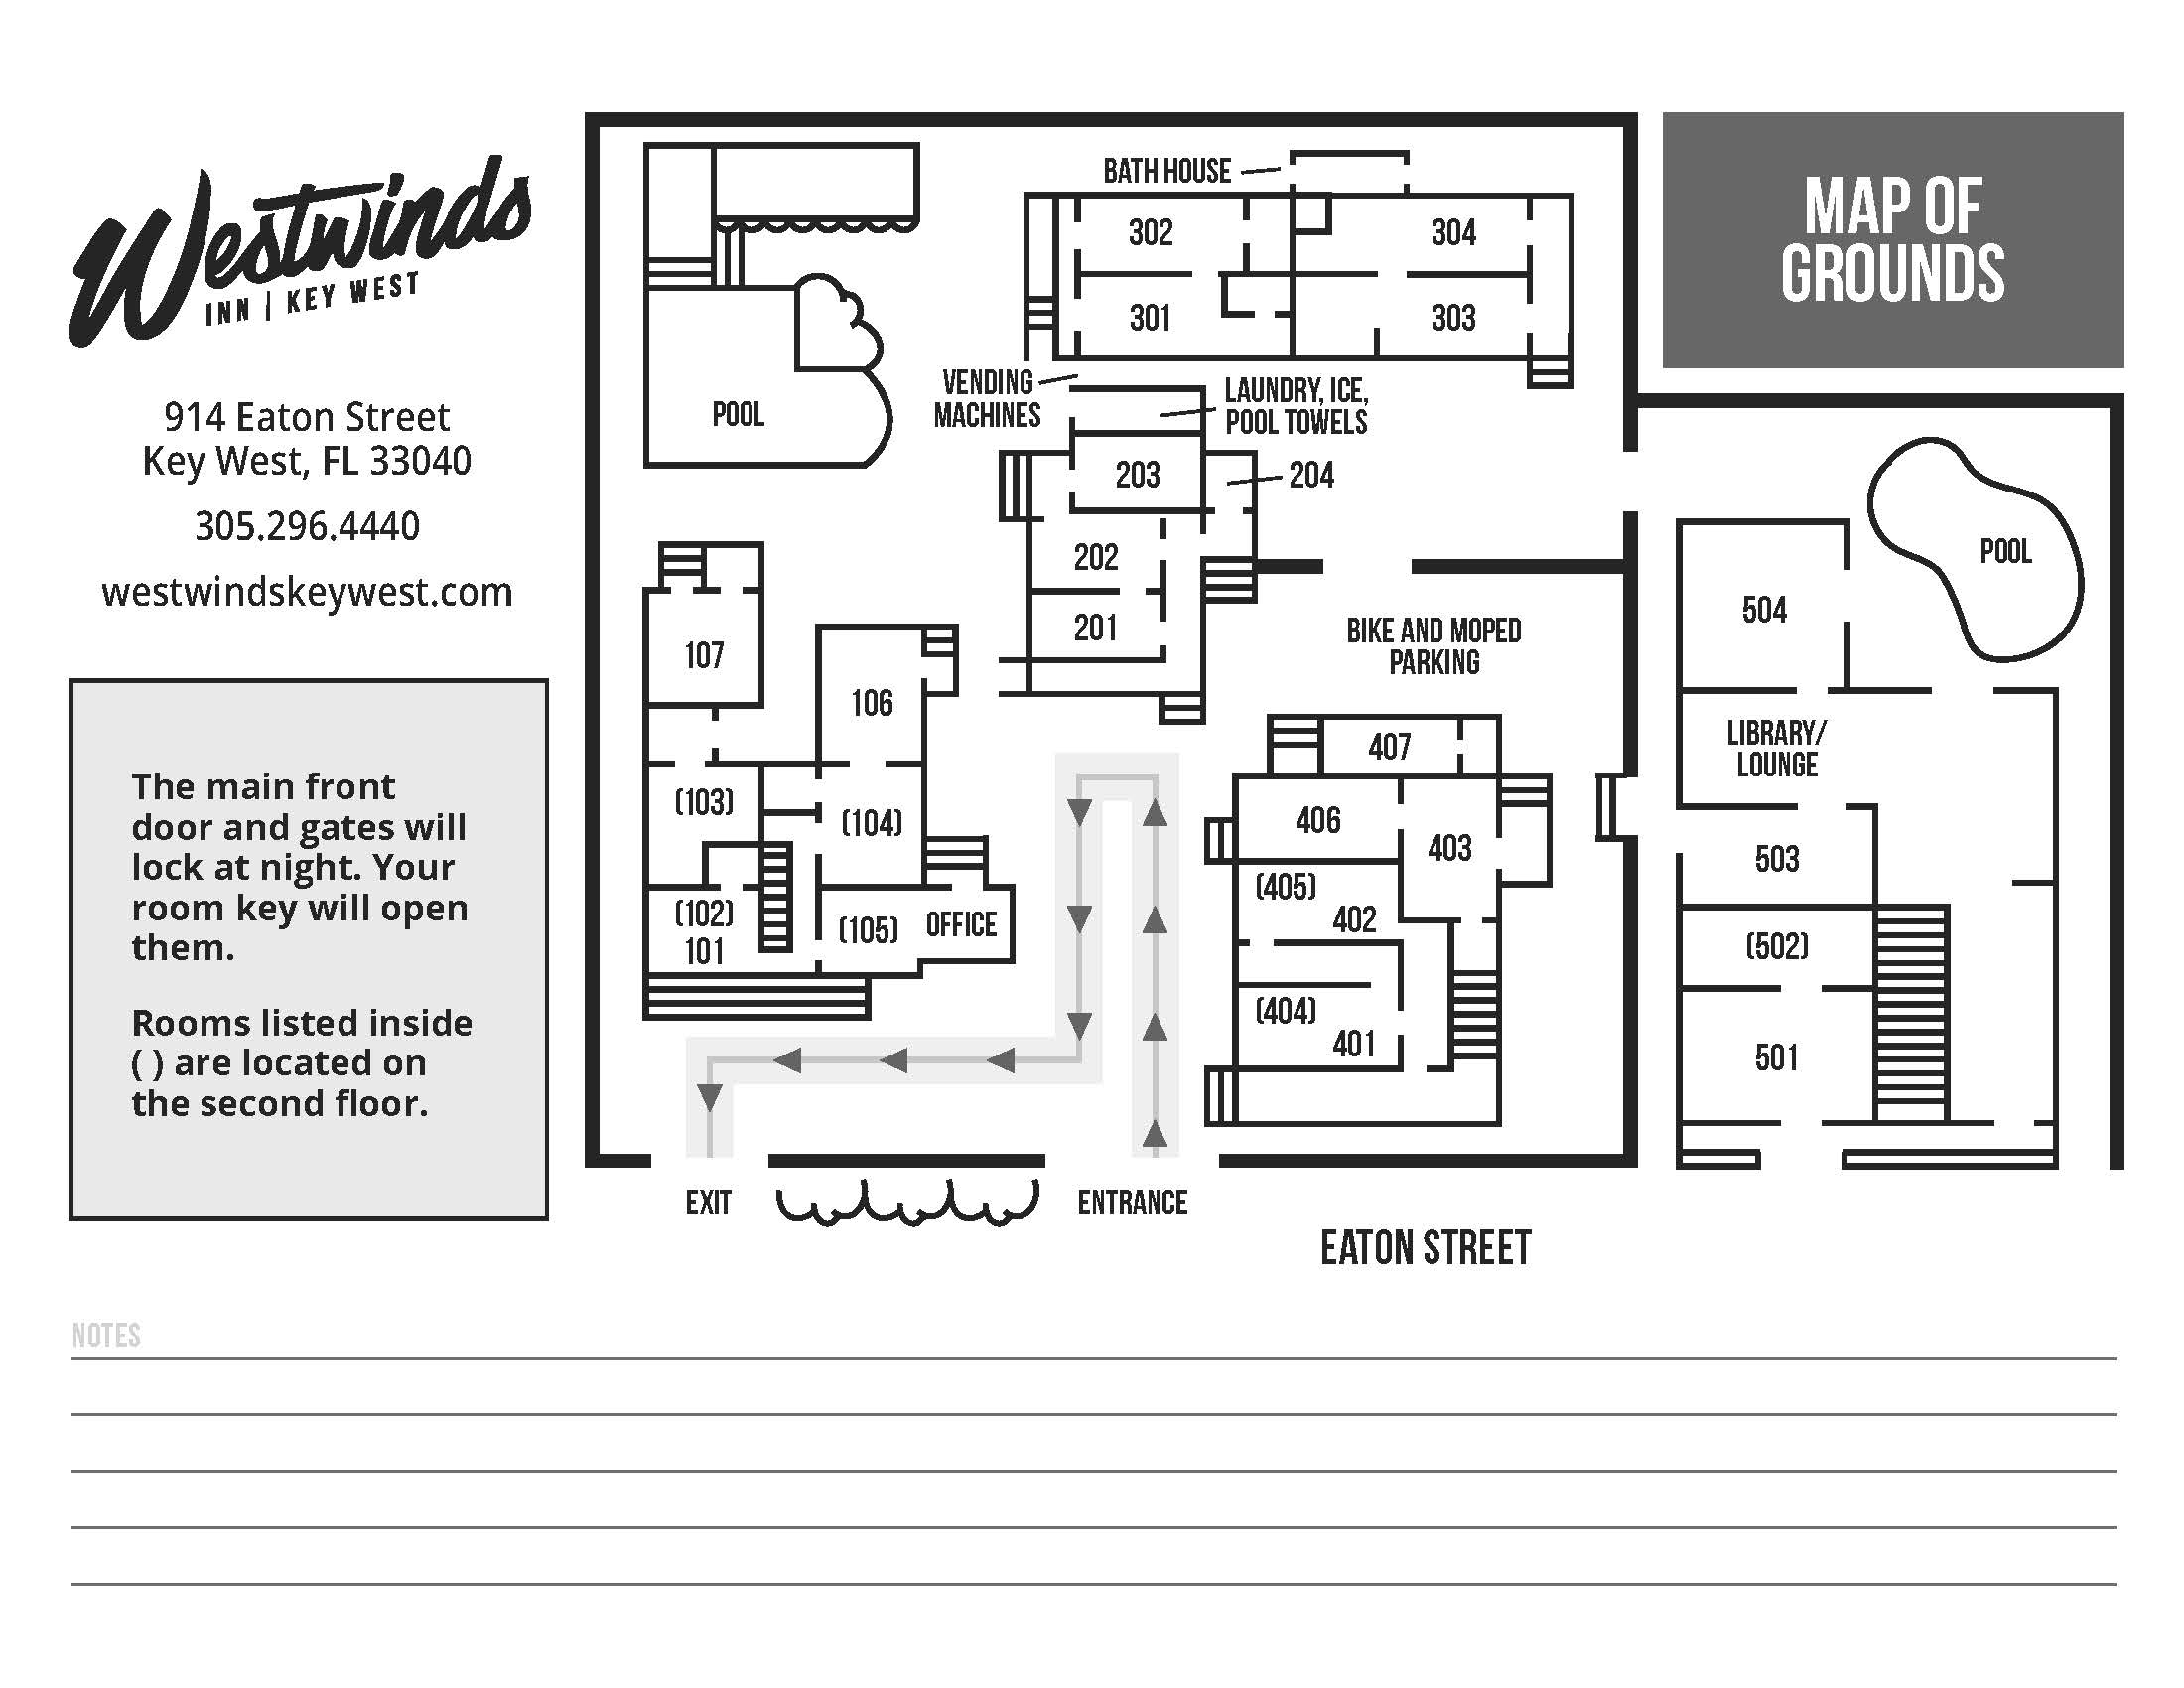 Westwinds Inn Property Grounds Map